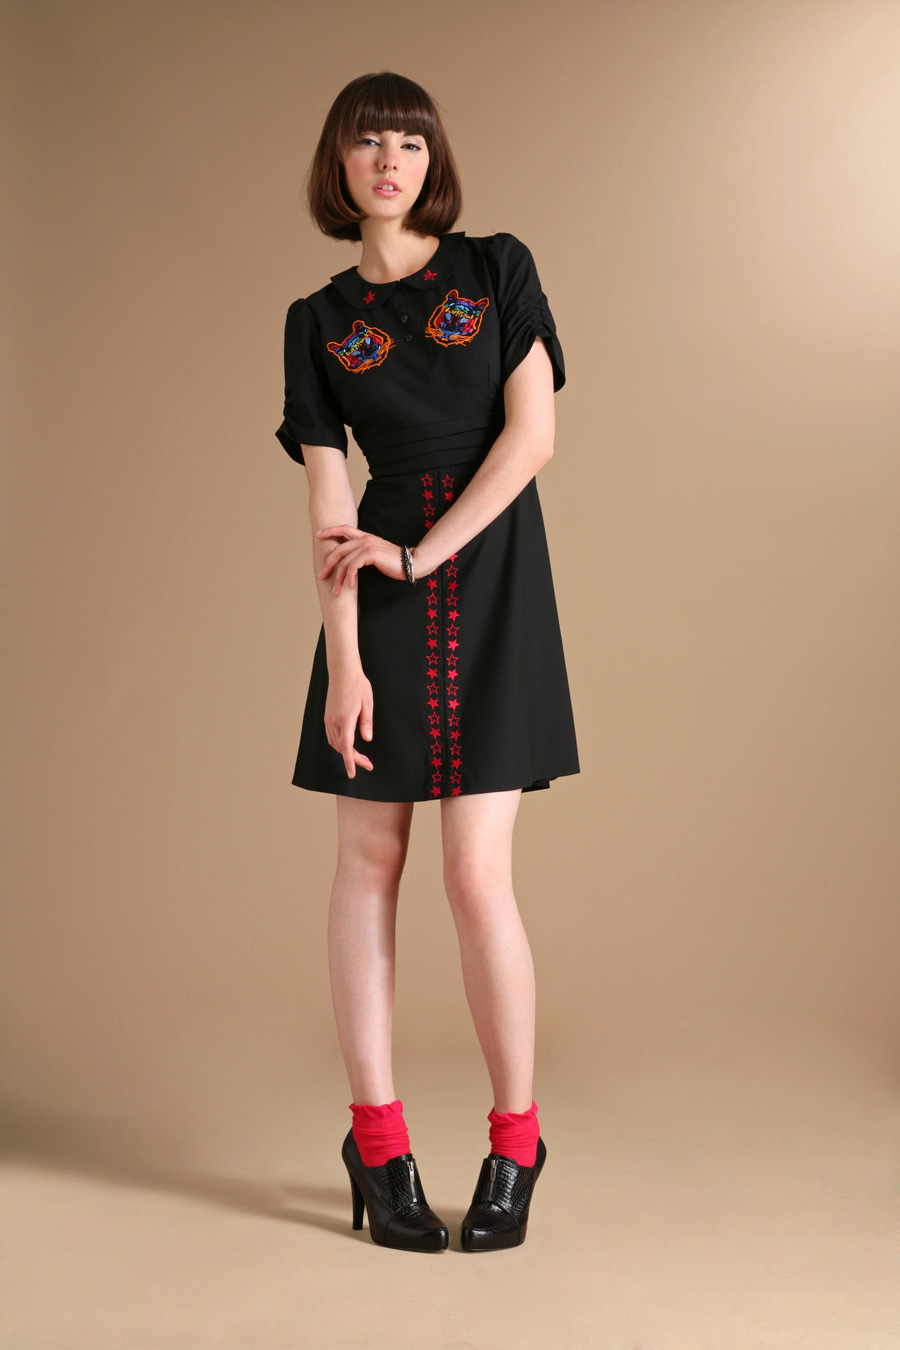 Dress: 'Fella' (embroidered). Zakee Shariff for ASOS, AW08